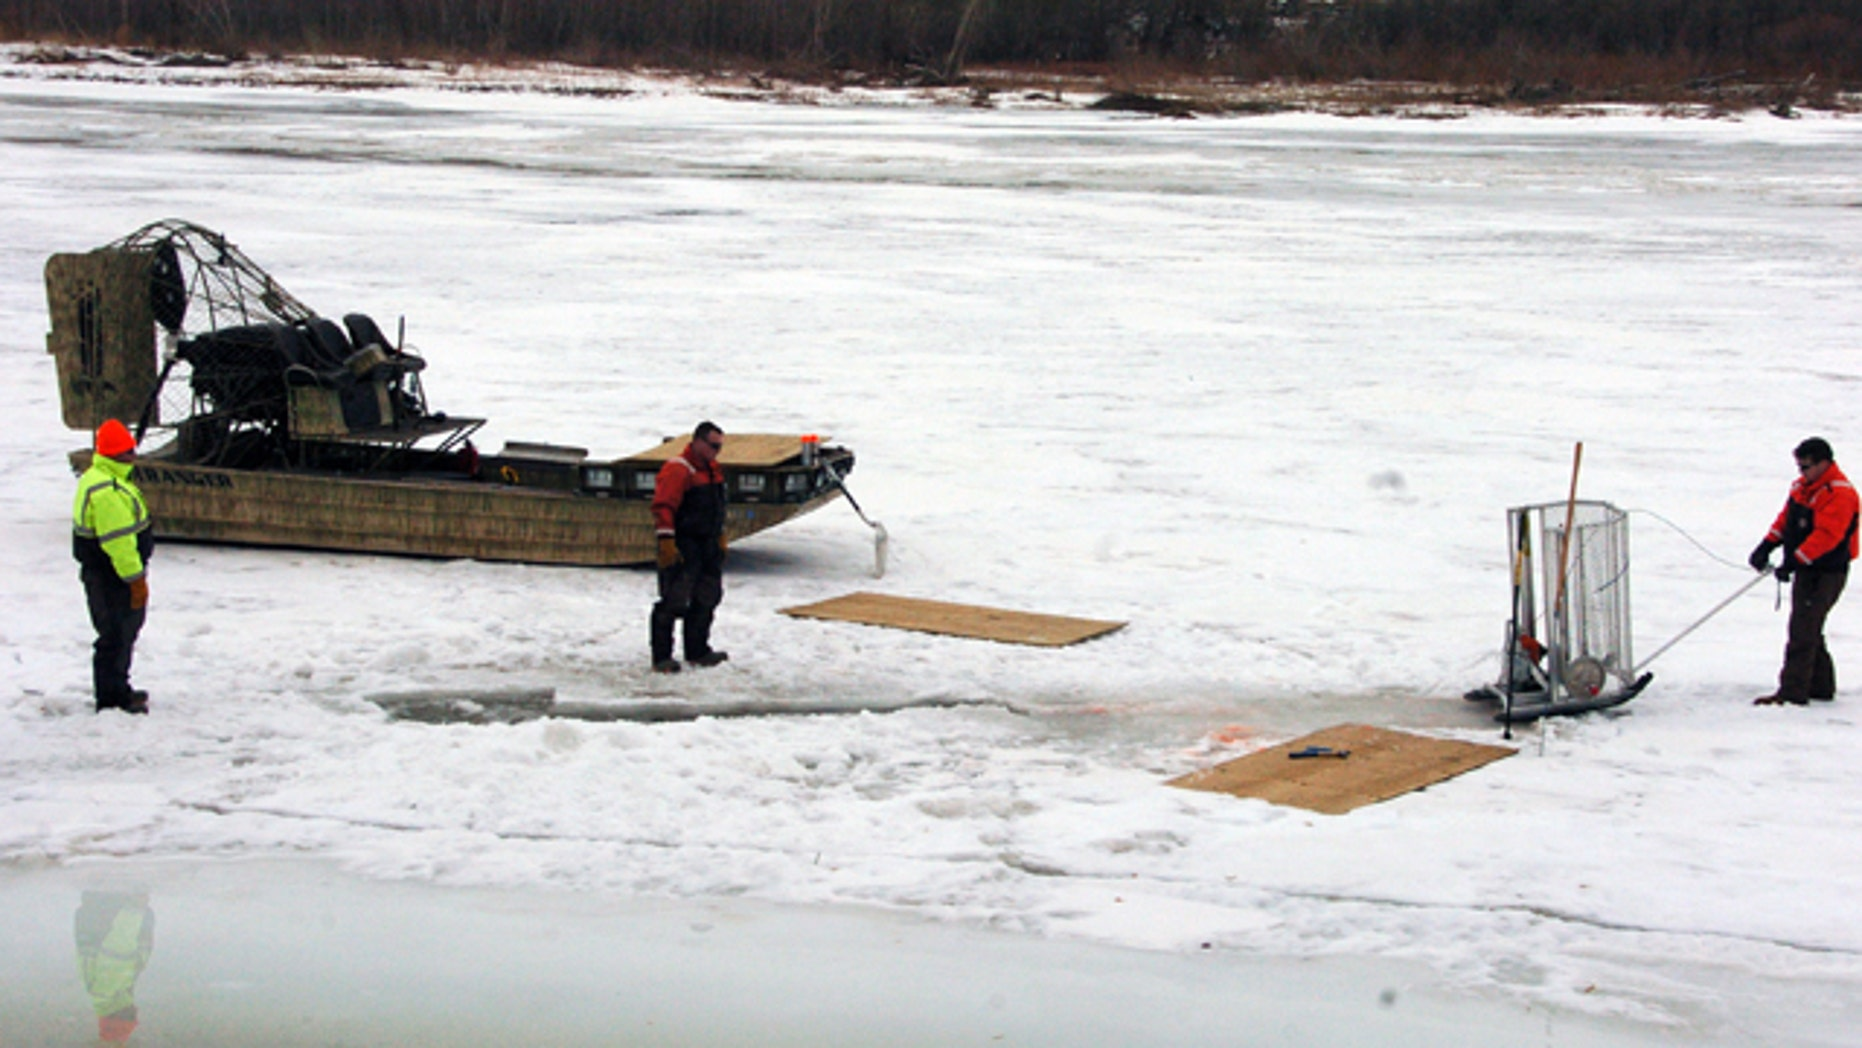 Jan. 19, 2015: Cleanup workers cut holes into the ice on the Yellowstone River near Crane, Mont, as part of efforts to recover oil from an upstream pipeline spill that released up to 50,000 gallons of crude. (AP Photo/Matthew Brown)